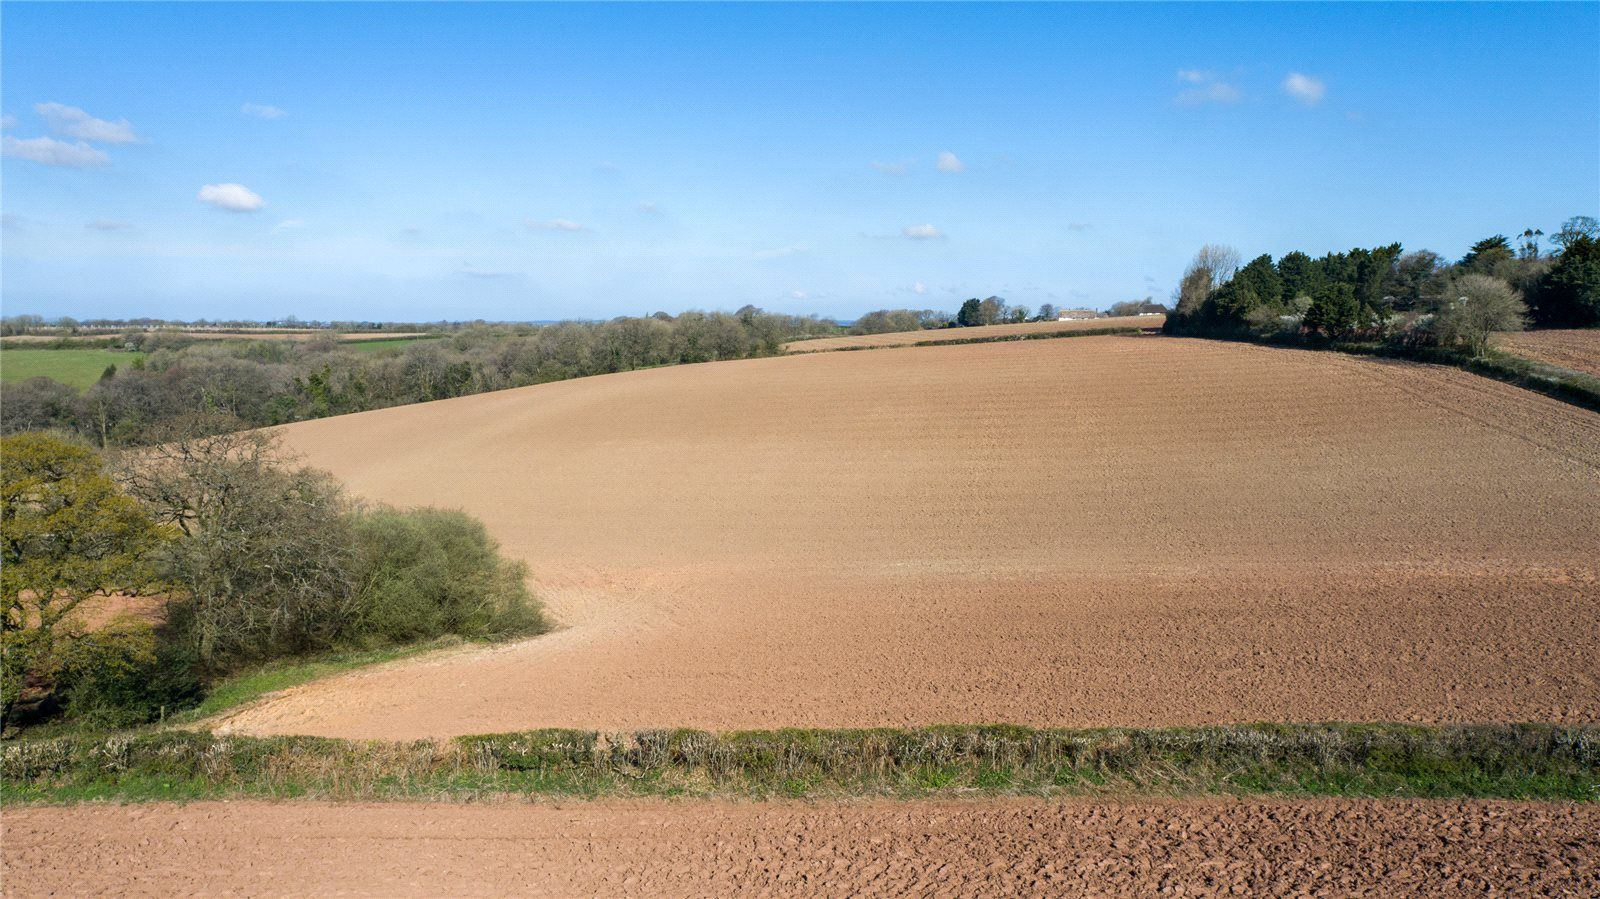 Property photo 1 of 4. Arable